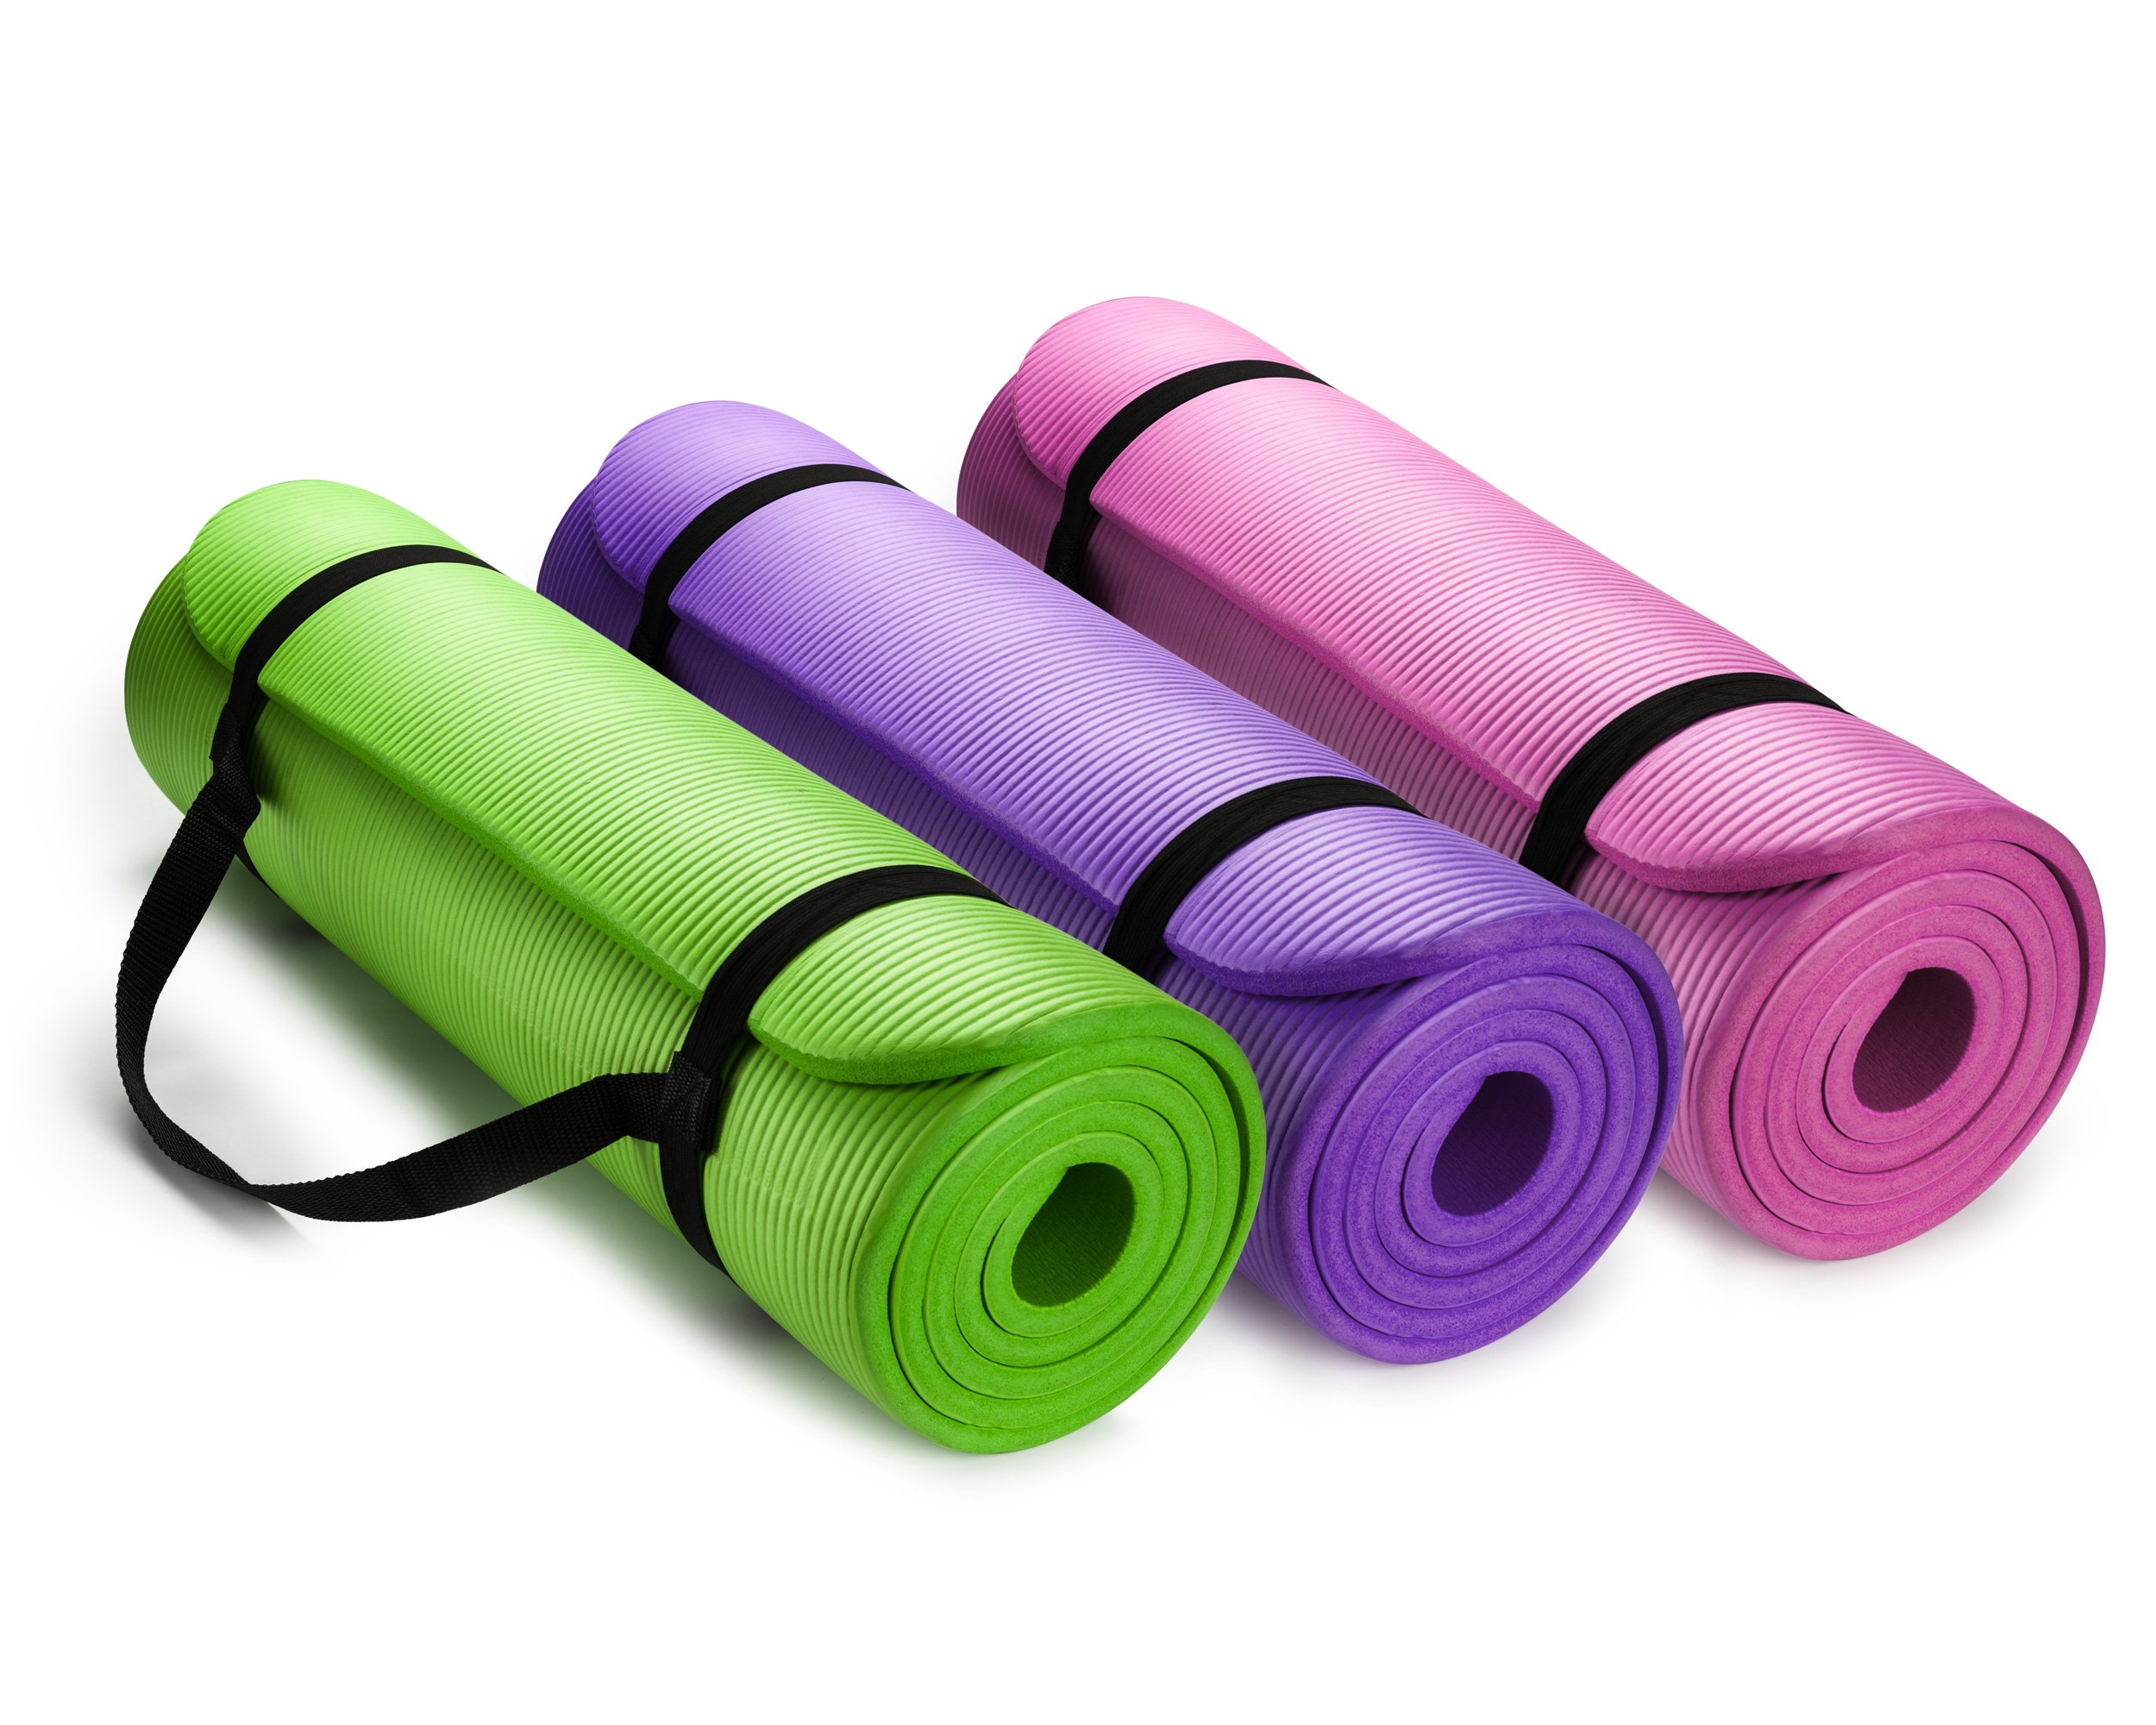 HemingWeigh 1/2-Inch Extra Thick High Density Exercise Yoga Mat with Carrying Strap (3 Pack Combo)